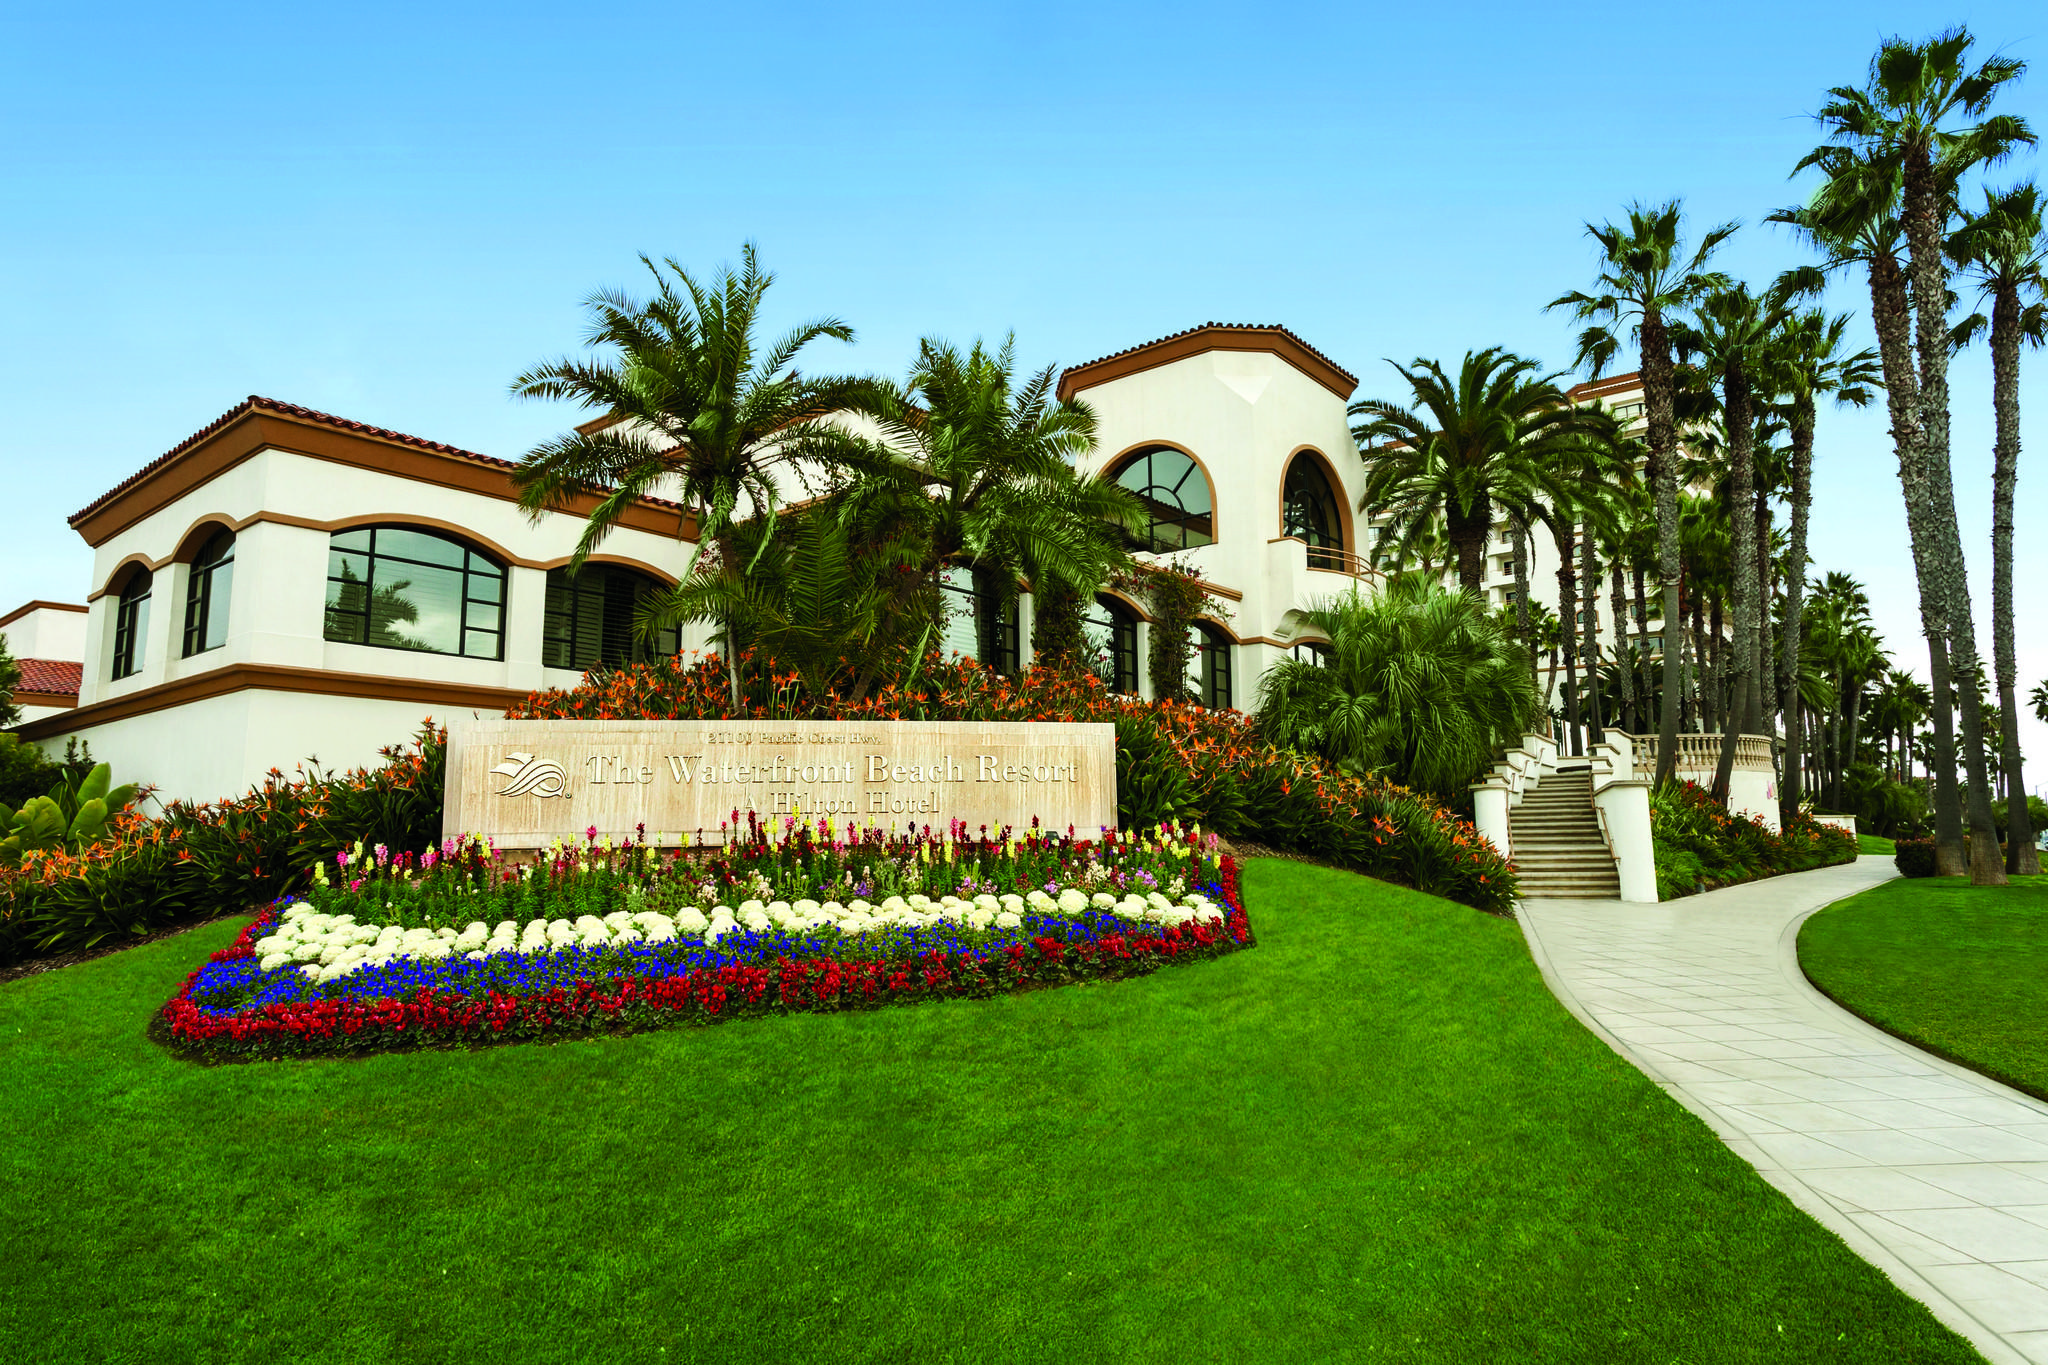 The Waterfront Beach Resort, a Hilton Hotel in Huntington Beach.